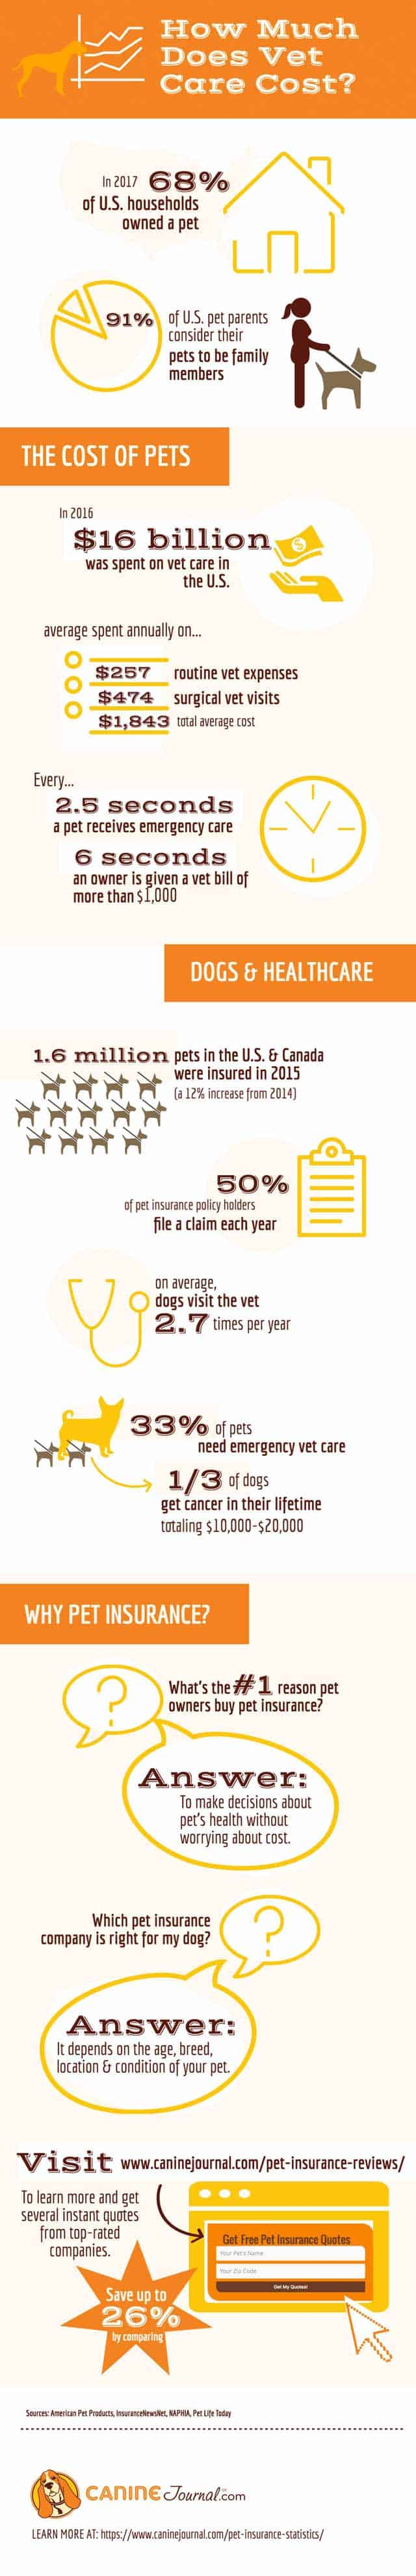 How Much Does Vet Care Cost?